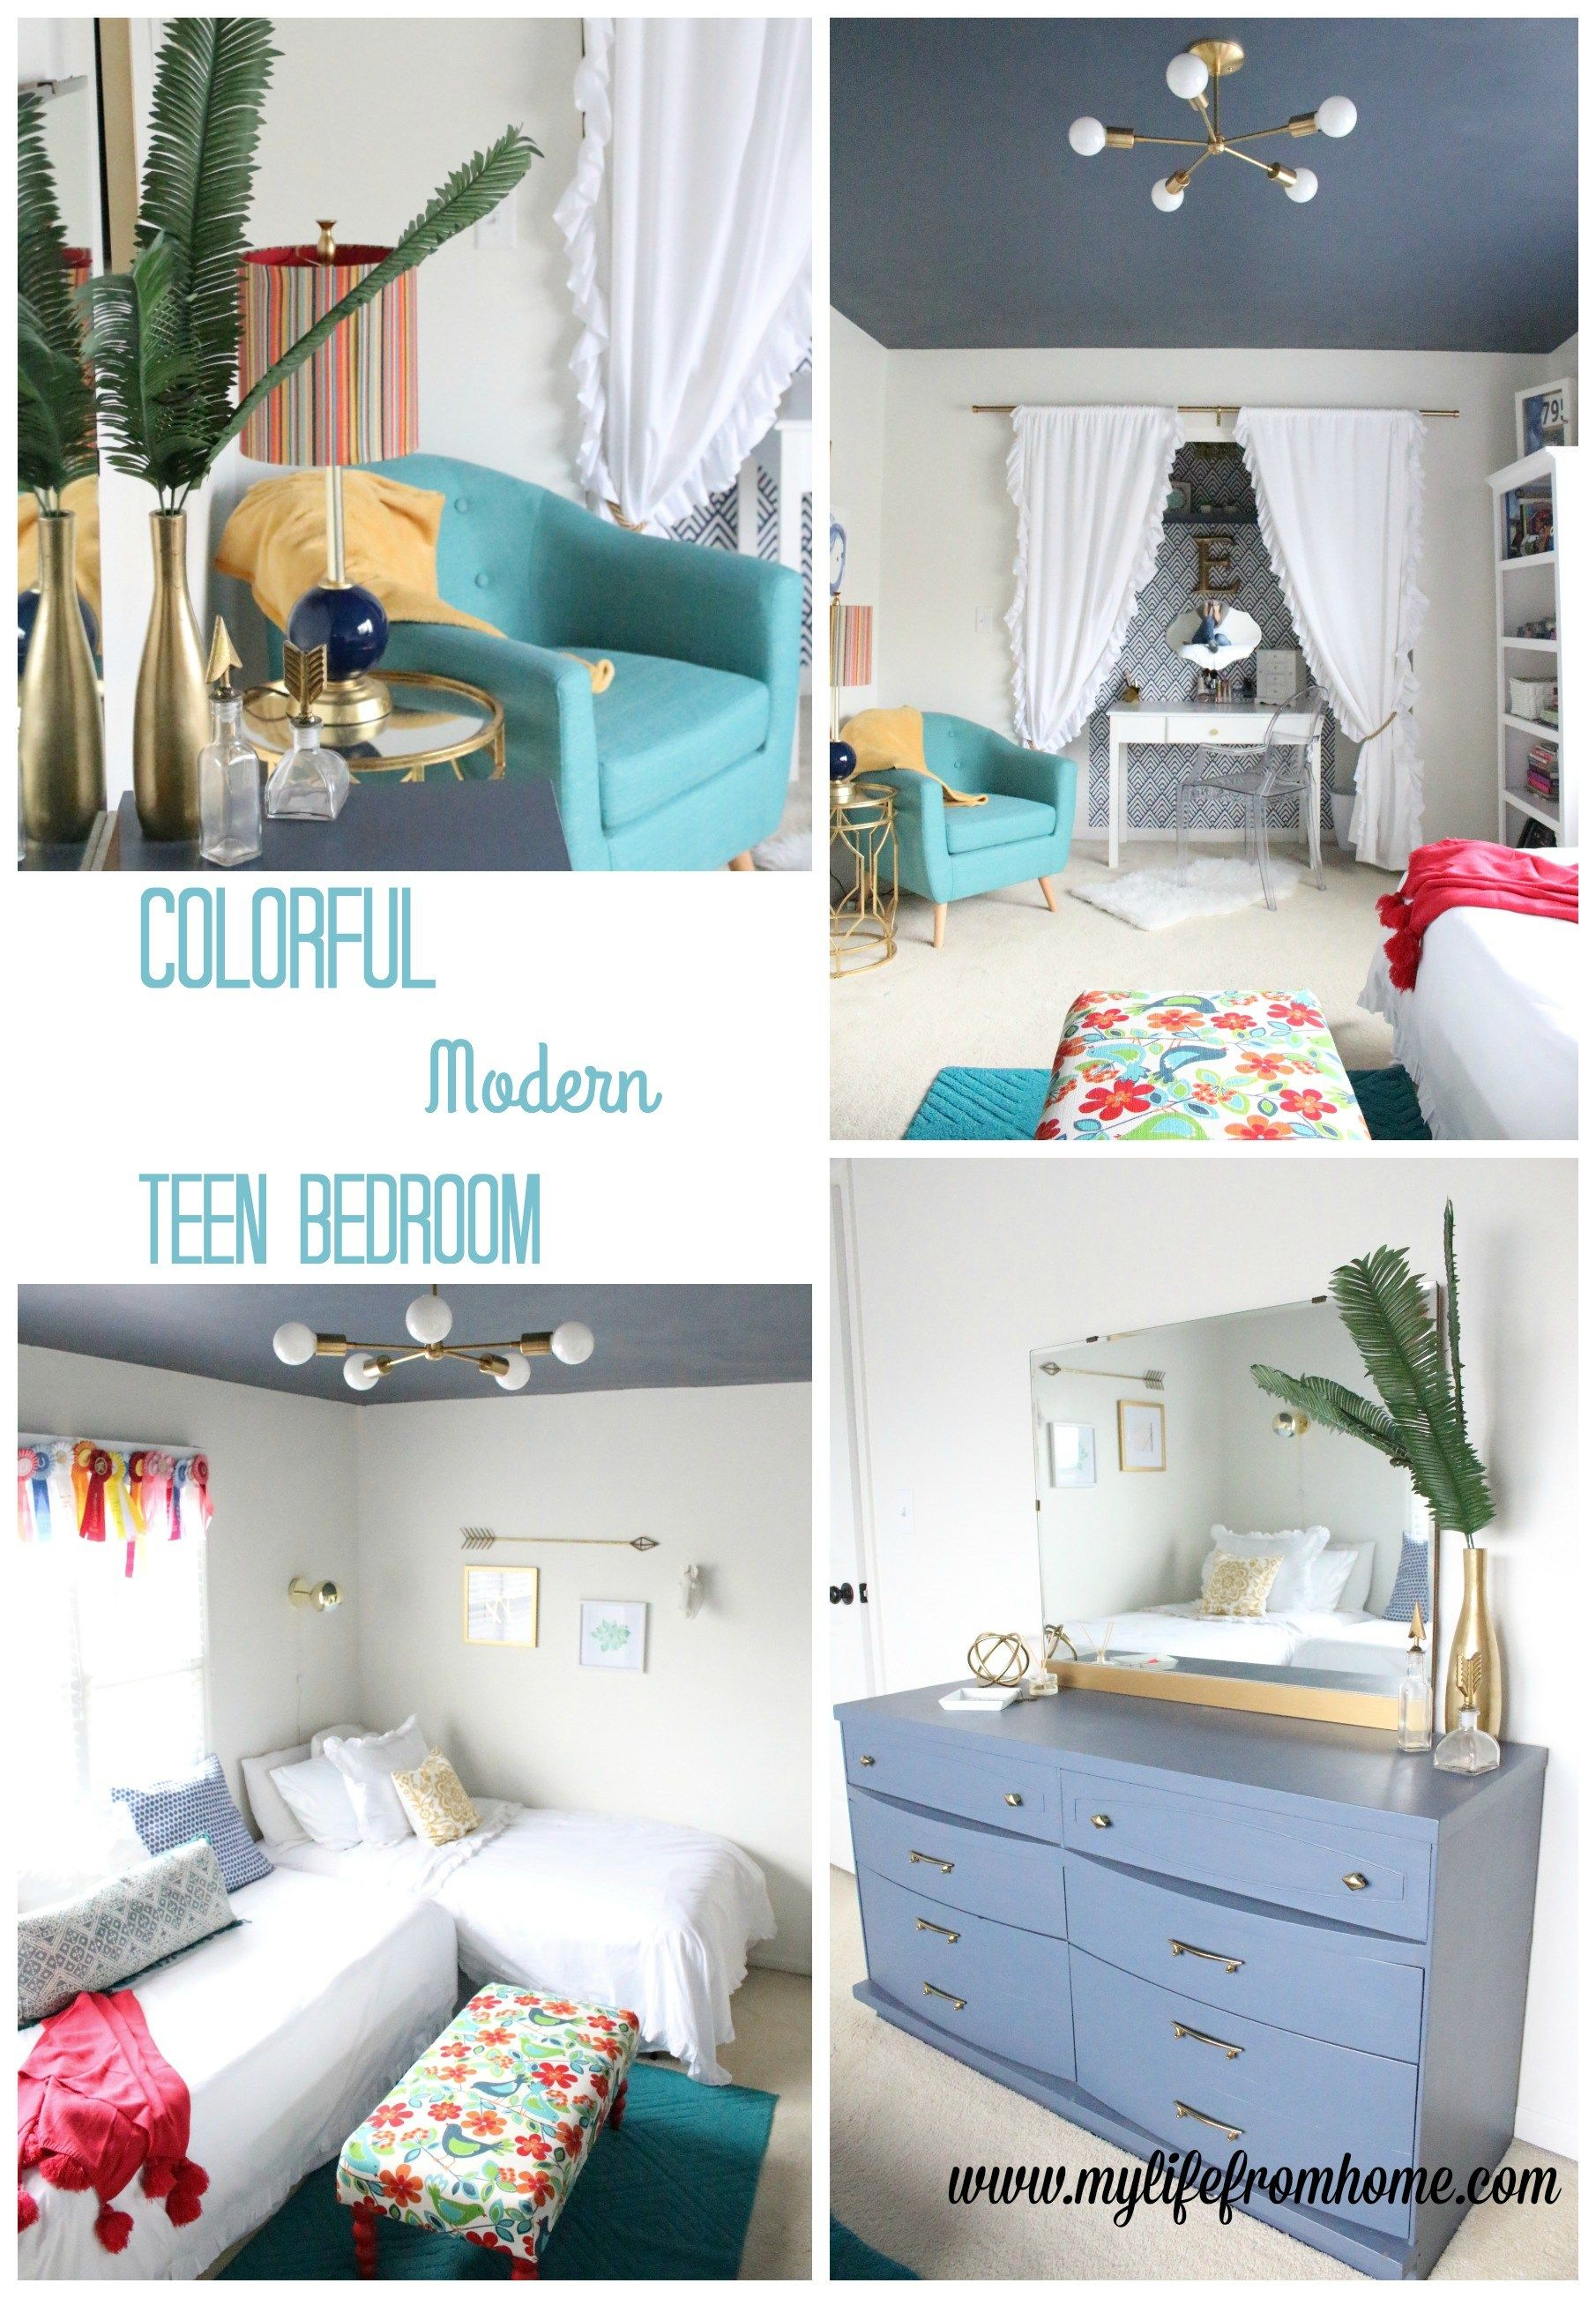 Bedroom colorful modern teen bedroom reveal bedroom redo teen bedroom kids bedrooms modern decor color gold decor home decorating bedroom redecorating one